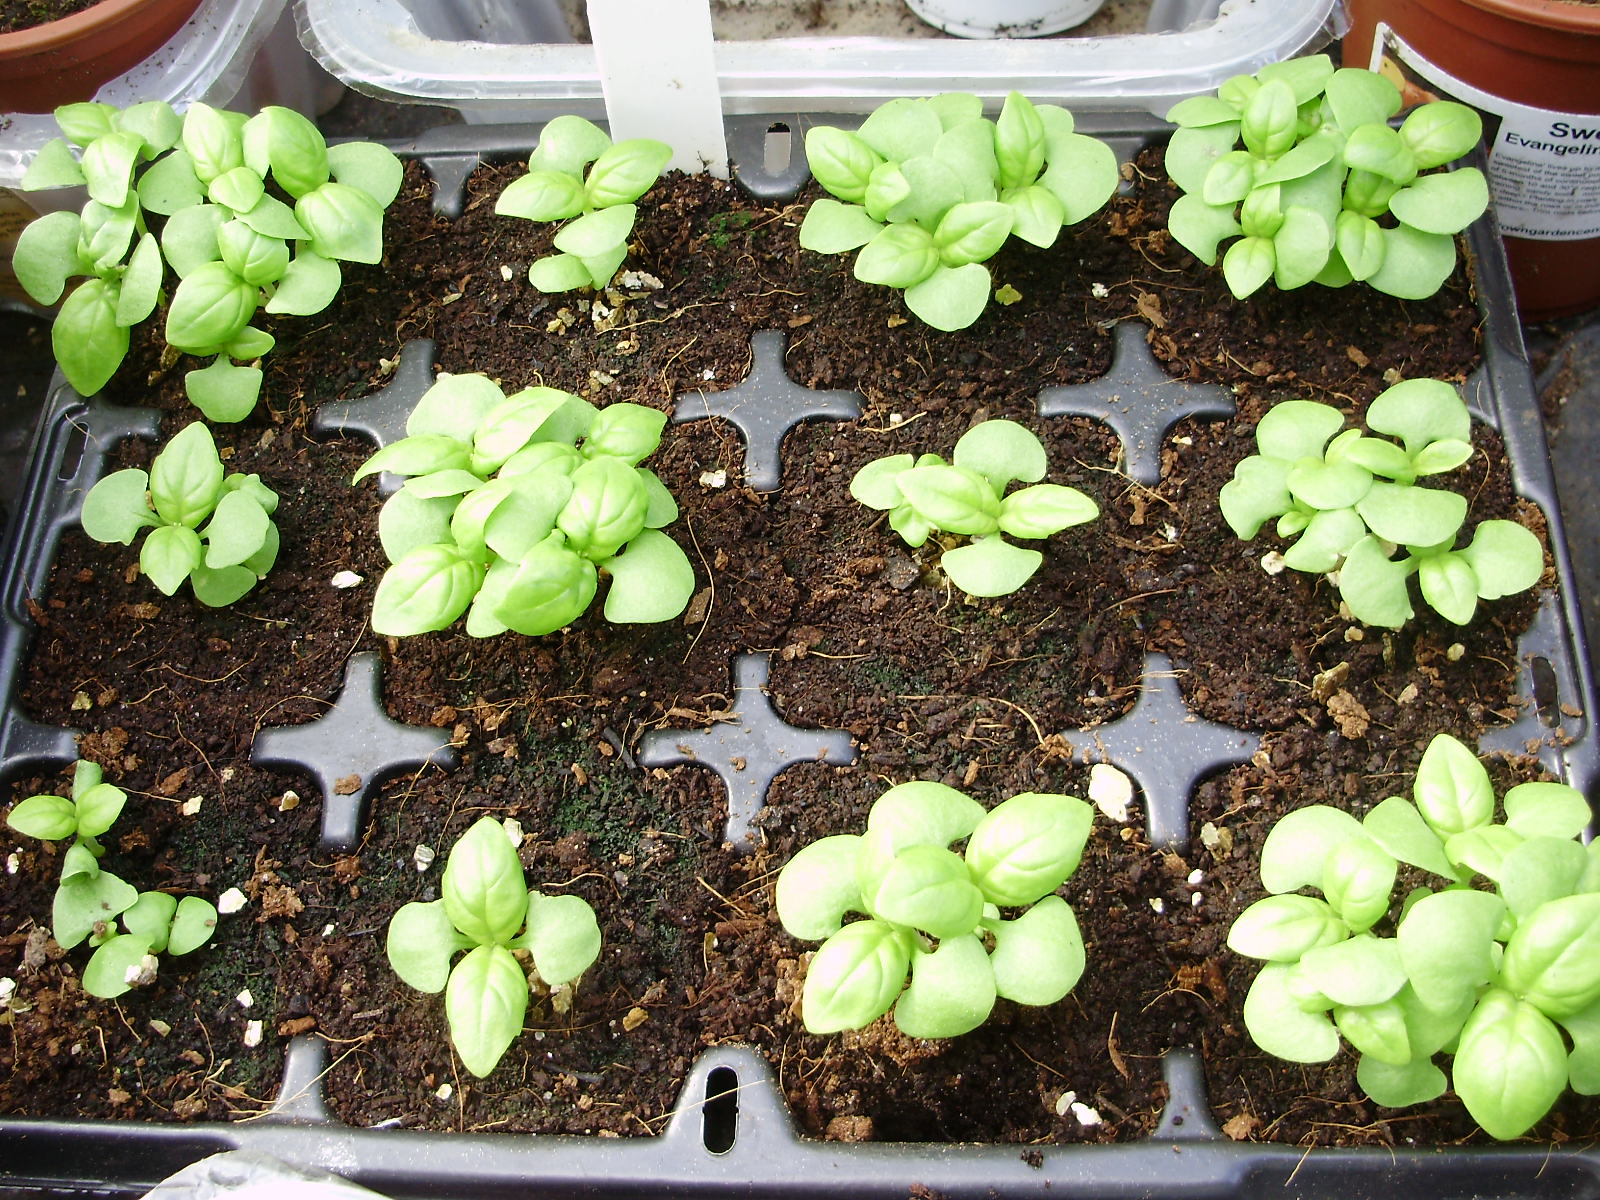 14. Basil seedlings sown in organic compost mid April. Pictured 3 weeks later ready for potting on